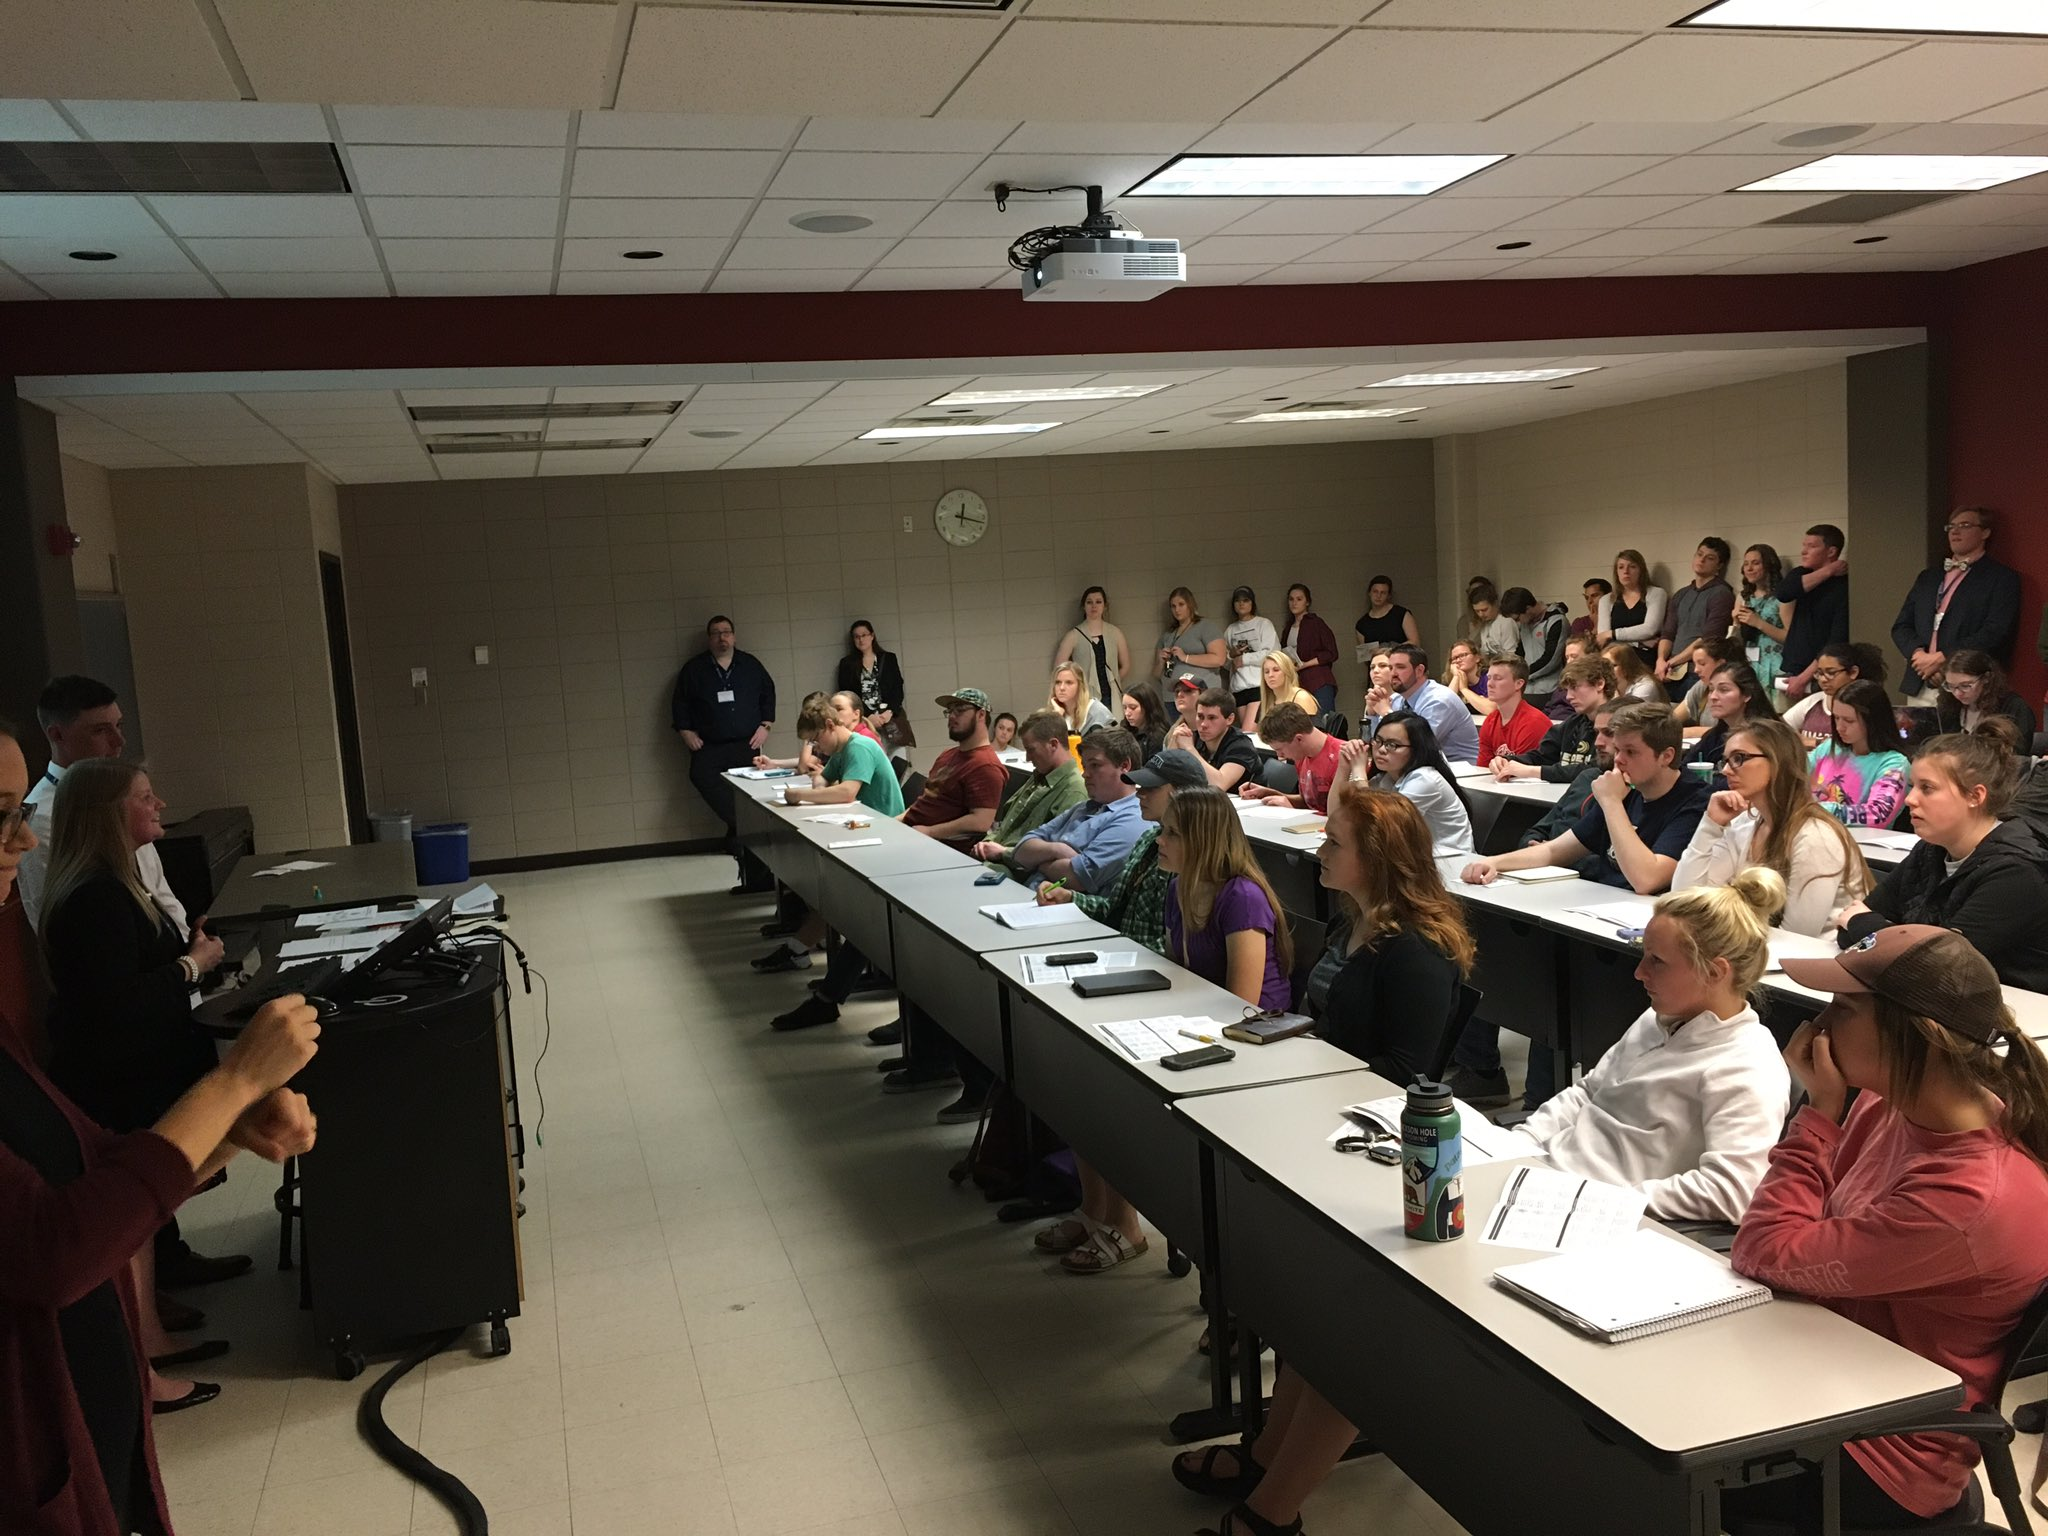 """Attendees listen to @JasminFosheim and @pklit23 discuss """"Piloting Assessment Tasks in the Interpreting Program"""" at Symposium. #ASL #research https://t.co/R3BXDBluj0"""